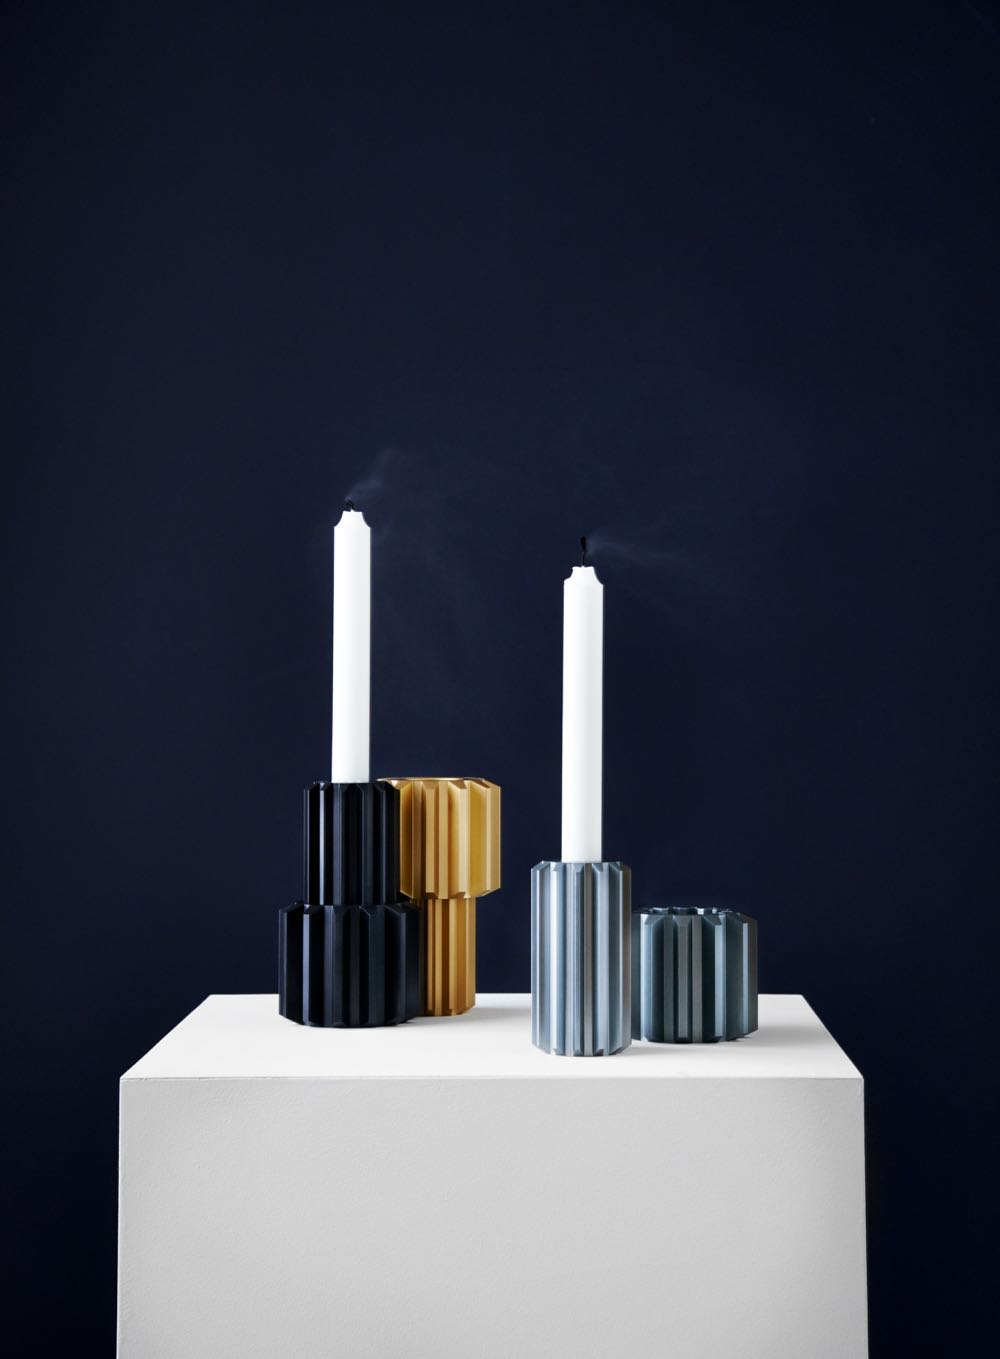 'Gear' candlesticks by Rikke Frost for New Works. One of the original designs from the 2013 collection.